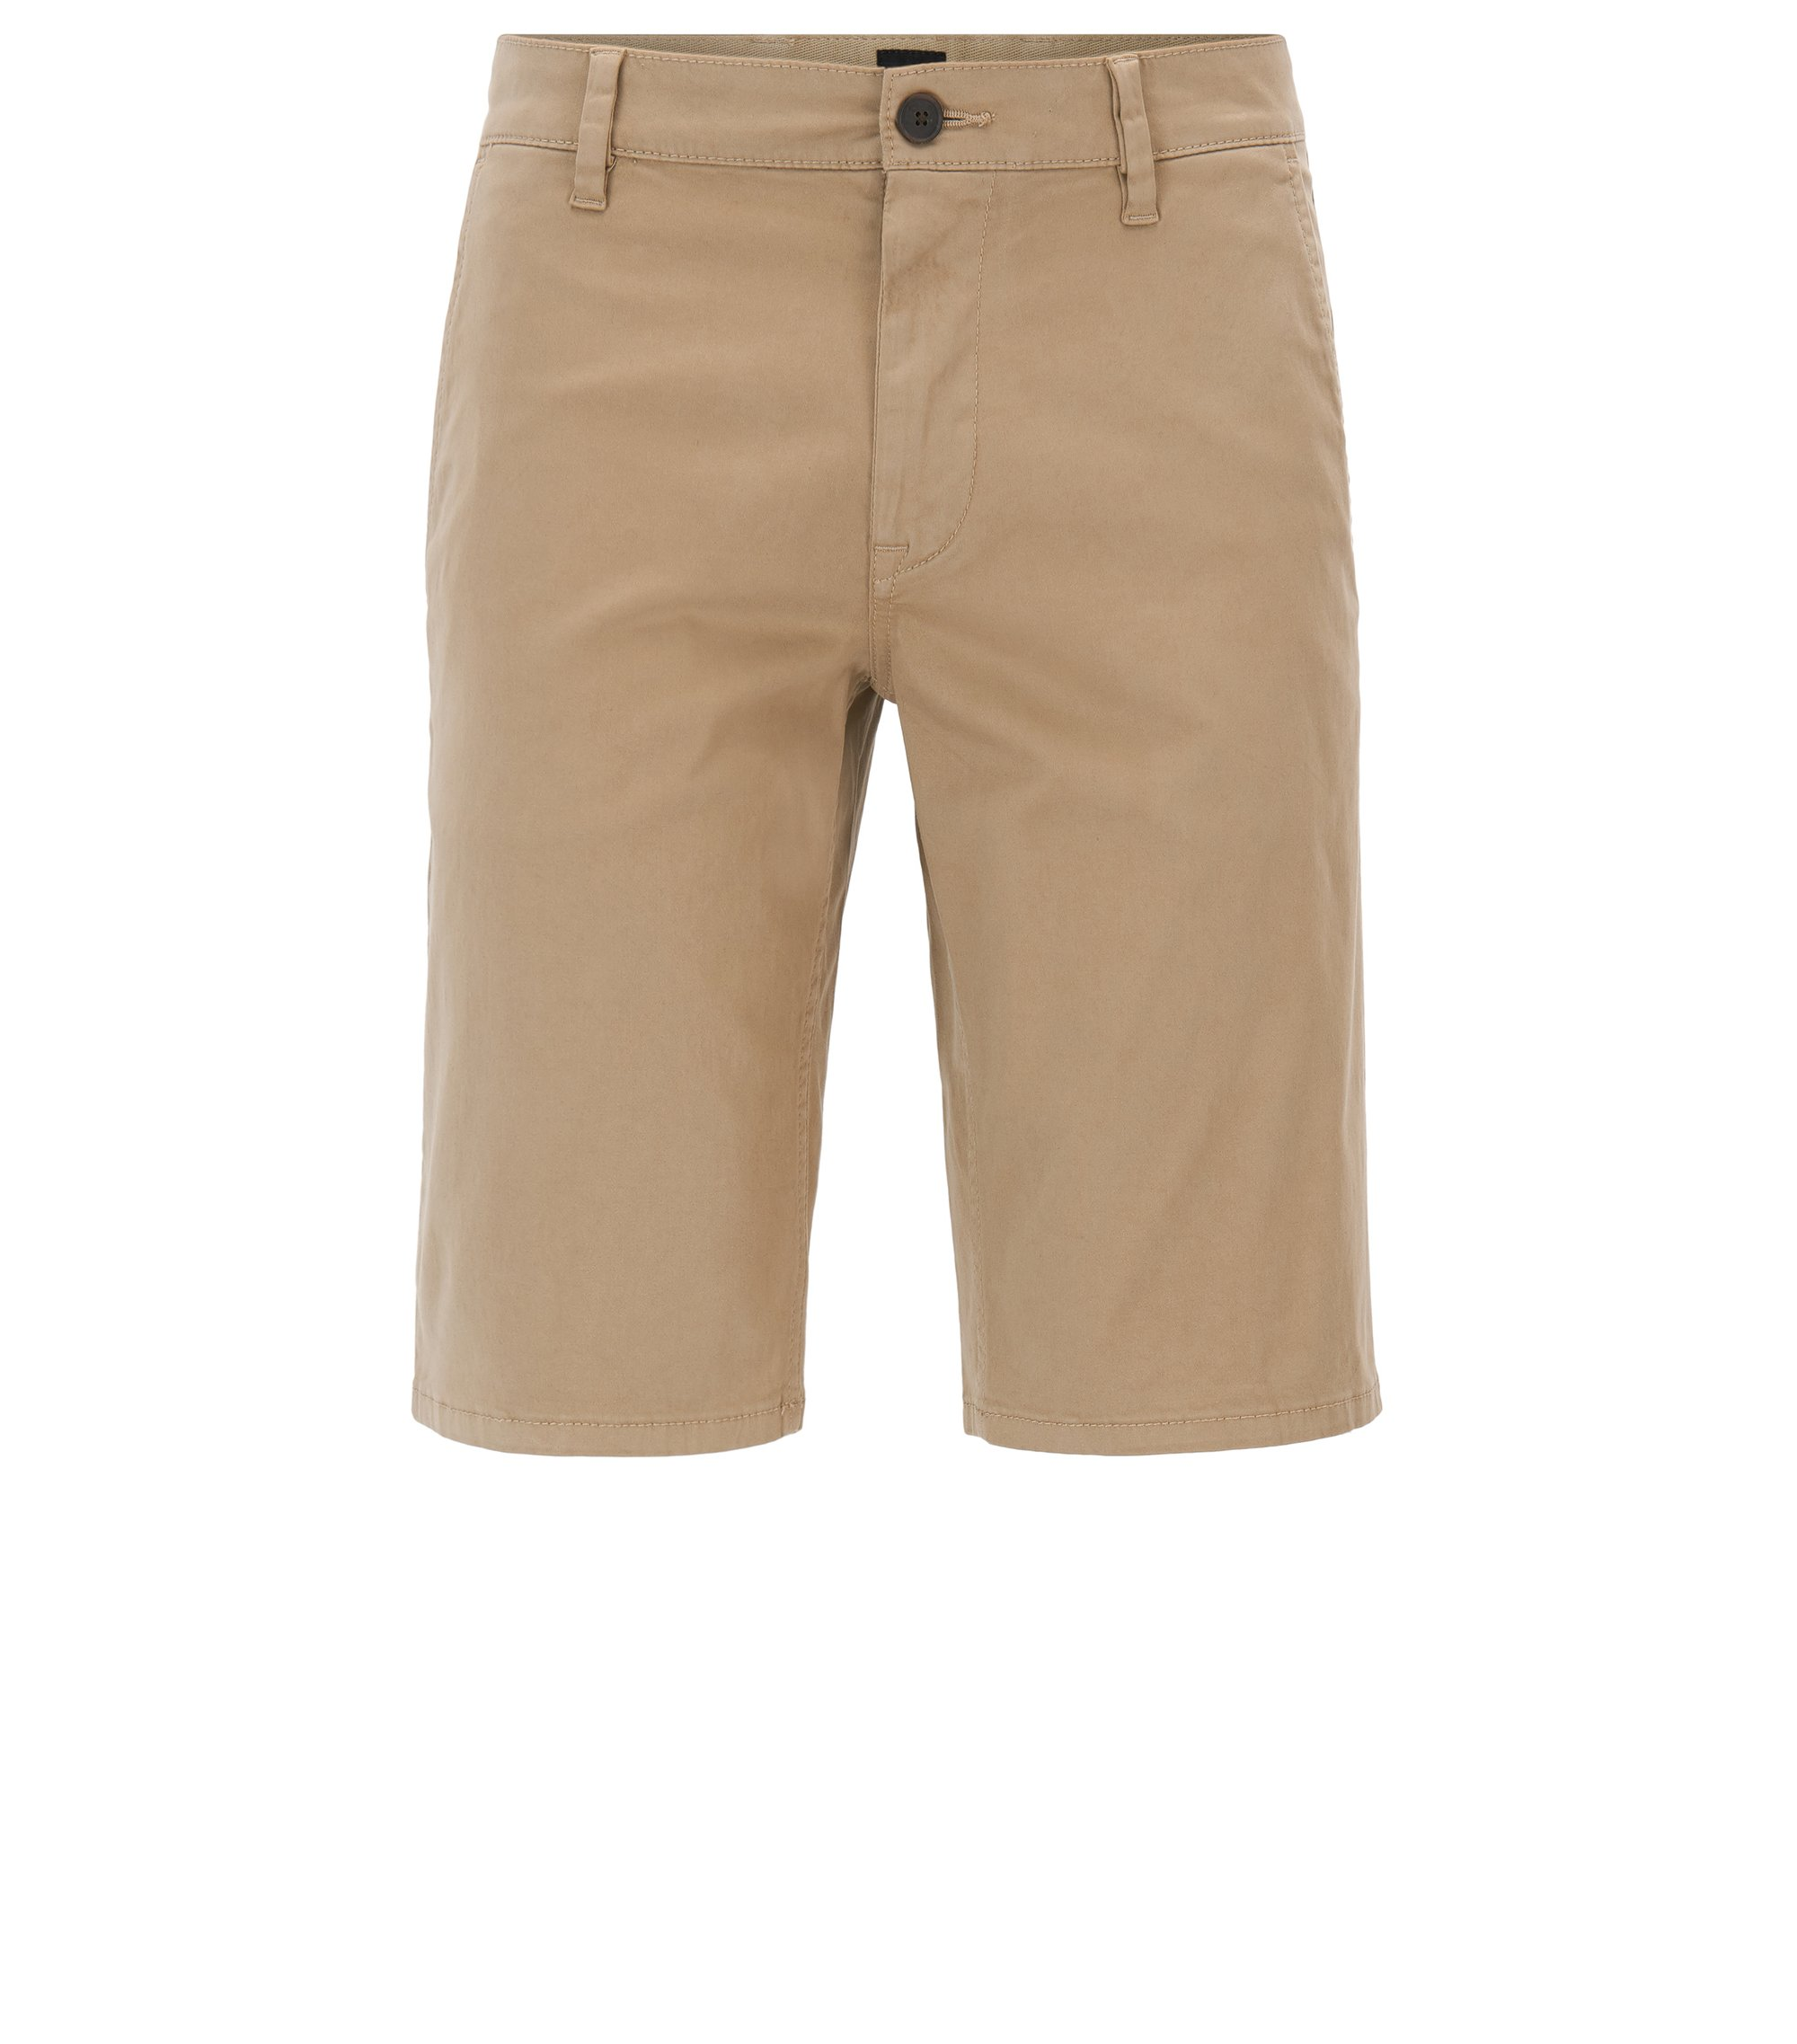 Stretch Cotton Chino Short, Slim Fit | Schino Slim Shorts D, Beige